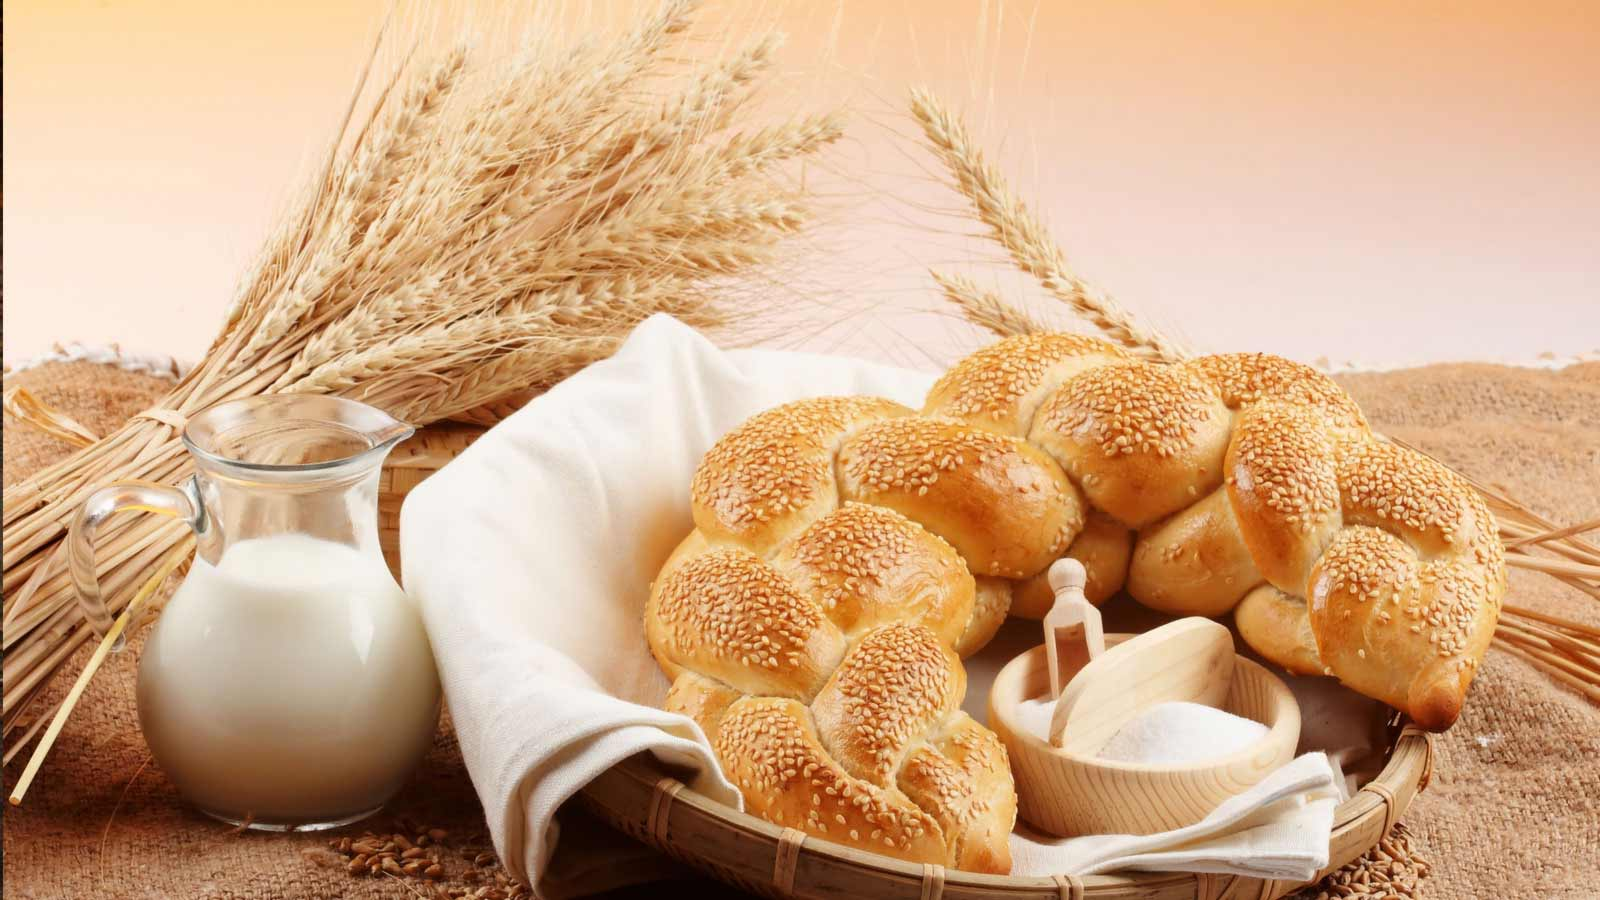 Surabhi best maida bakery products ,Food product Manufacturers In Kerala